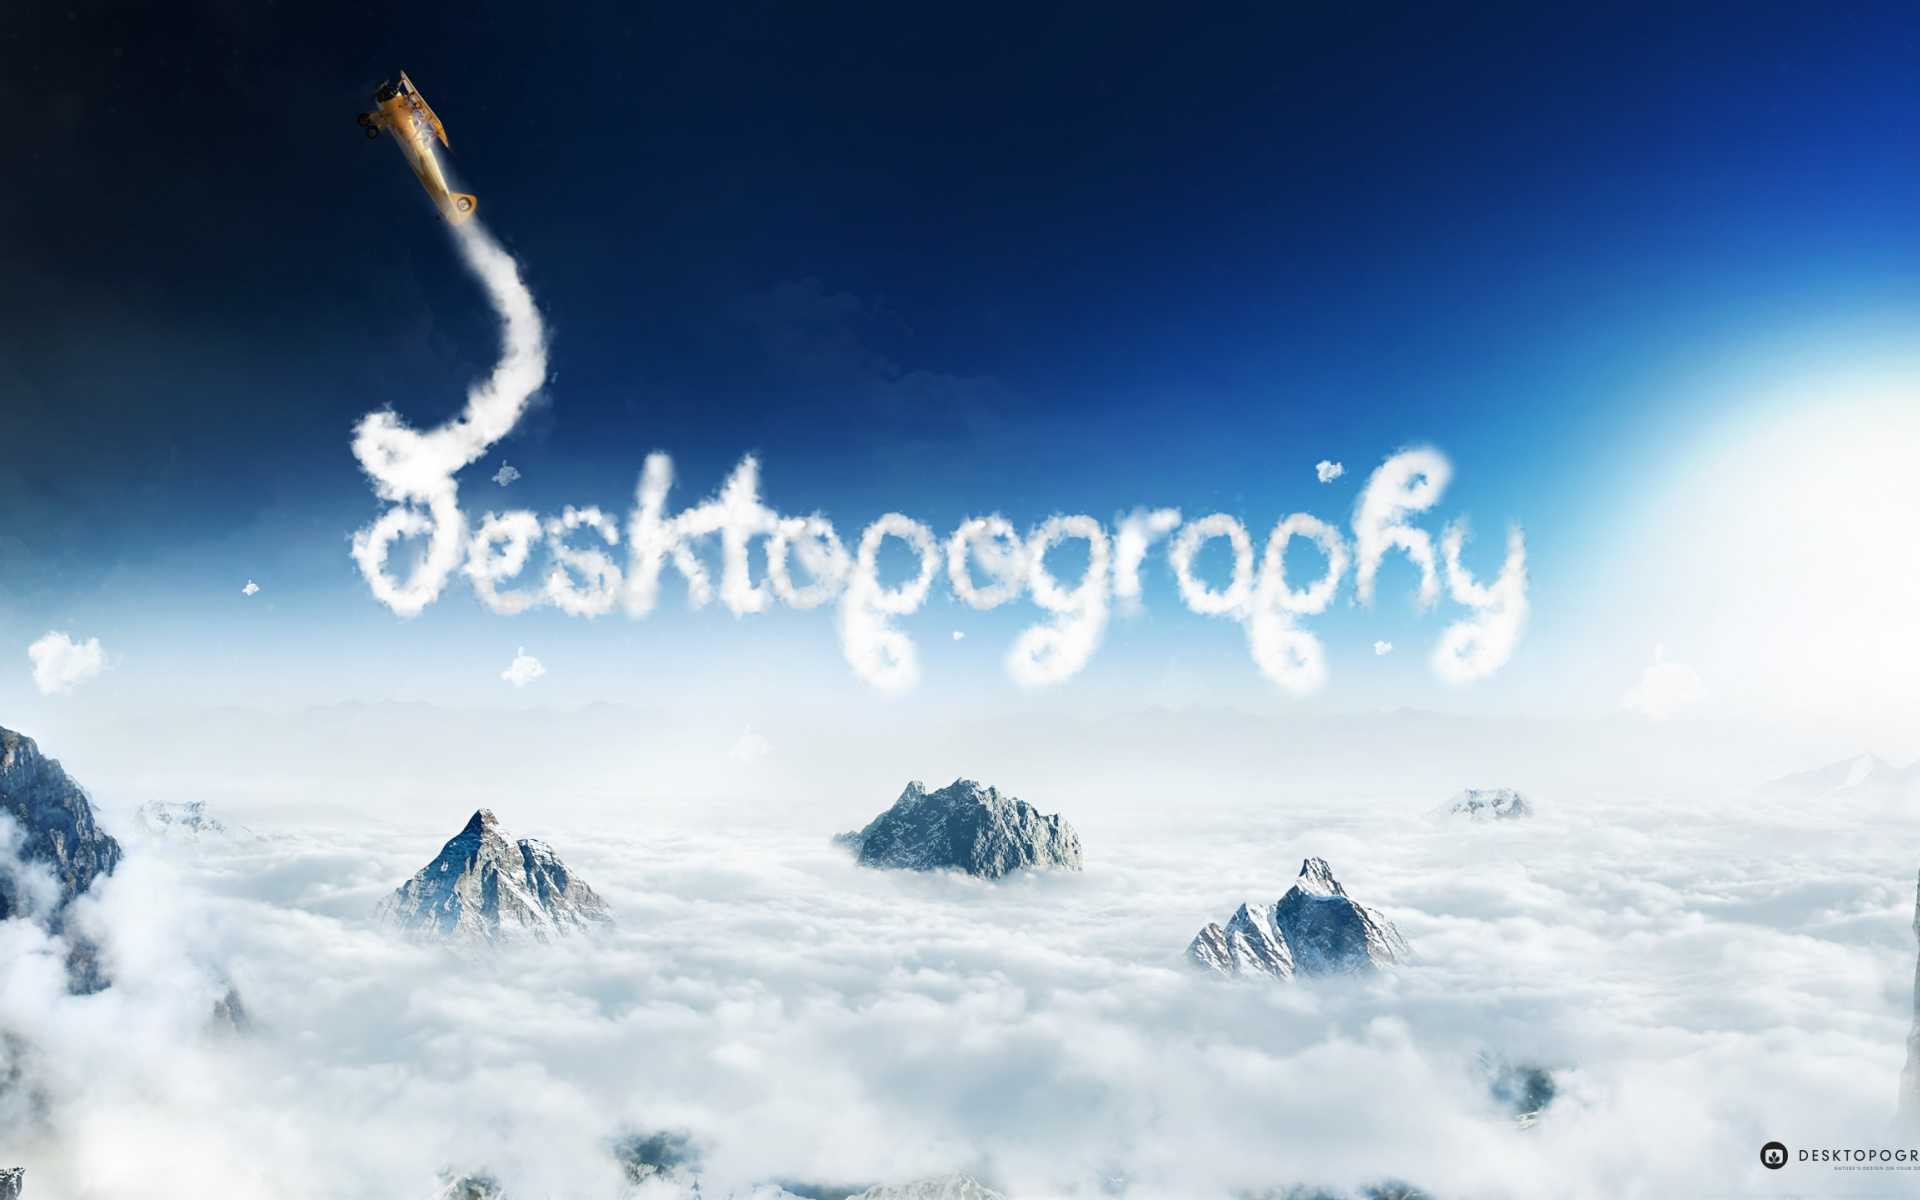 Sky Desktopography 407.36 Kb